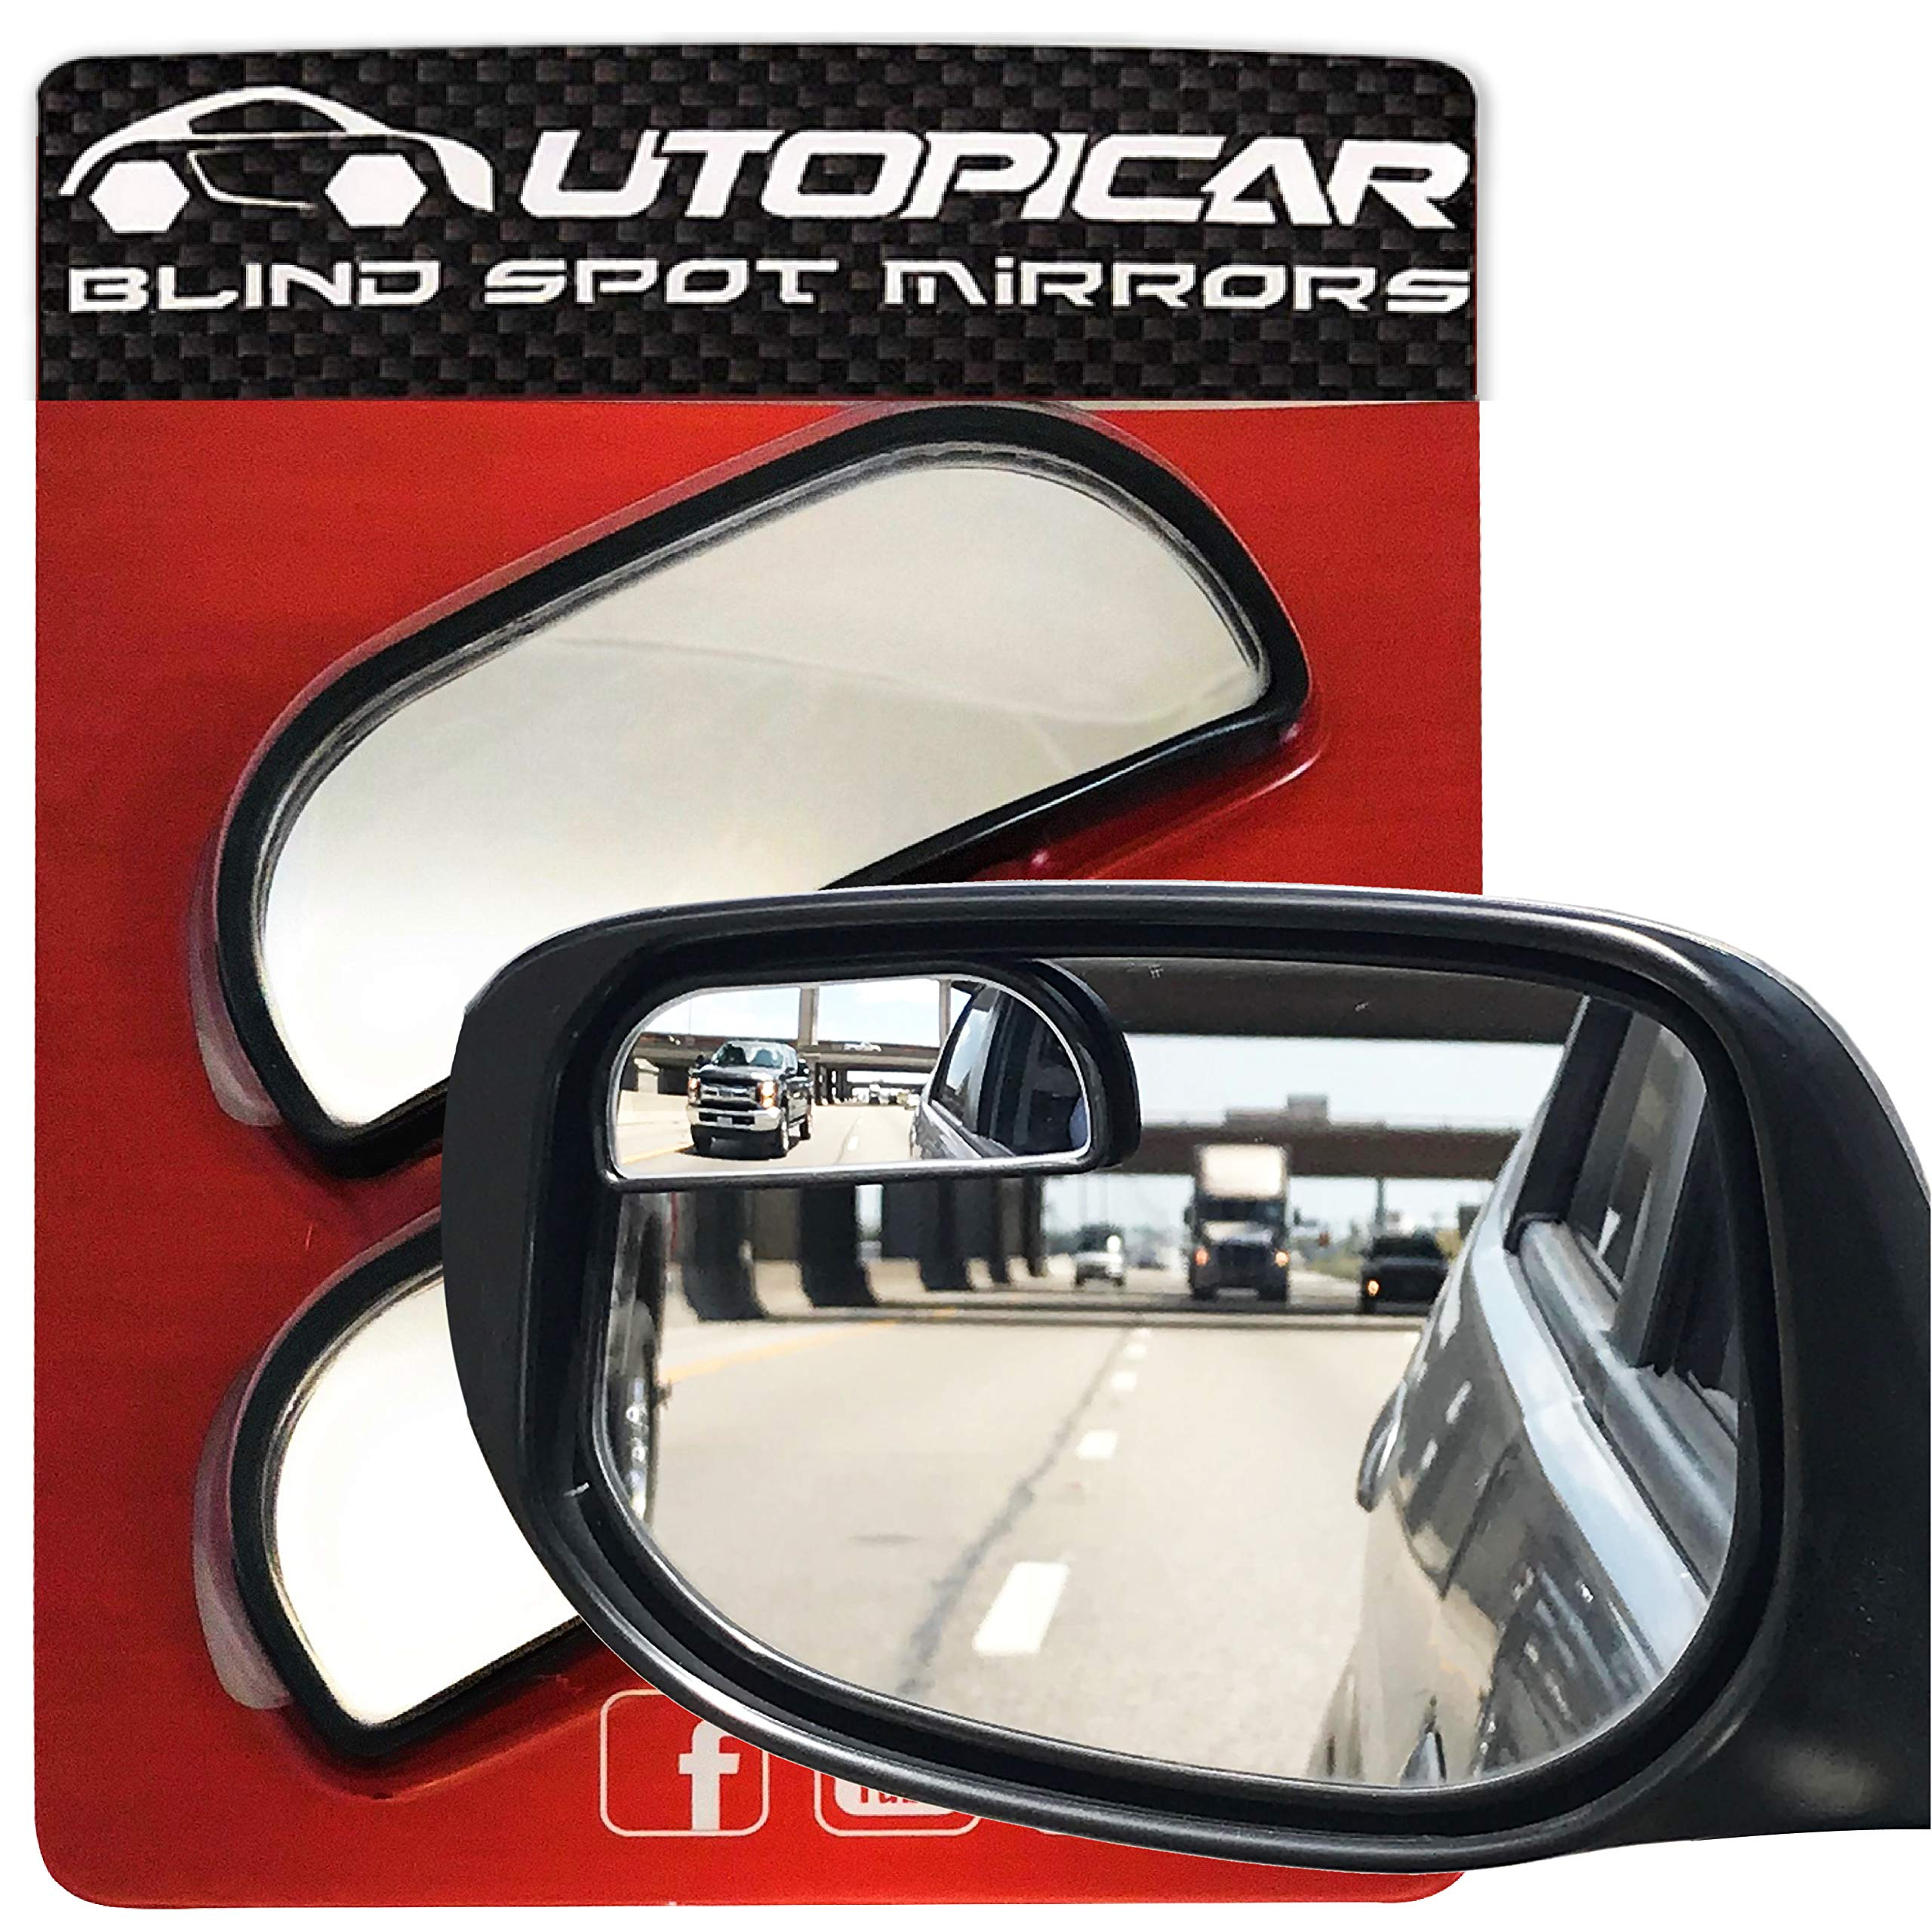 Good value Blind spot mirrors